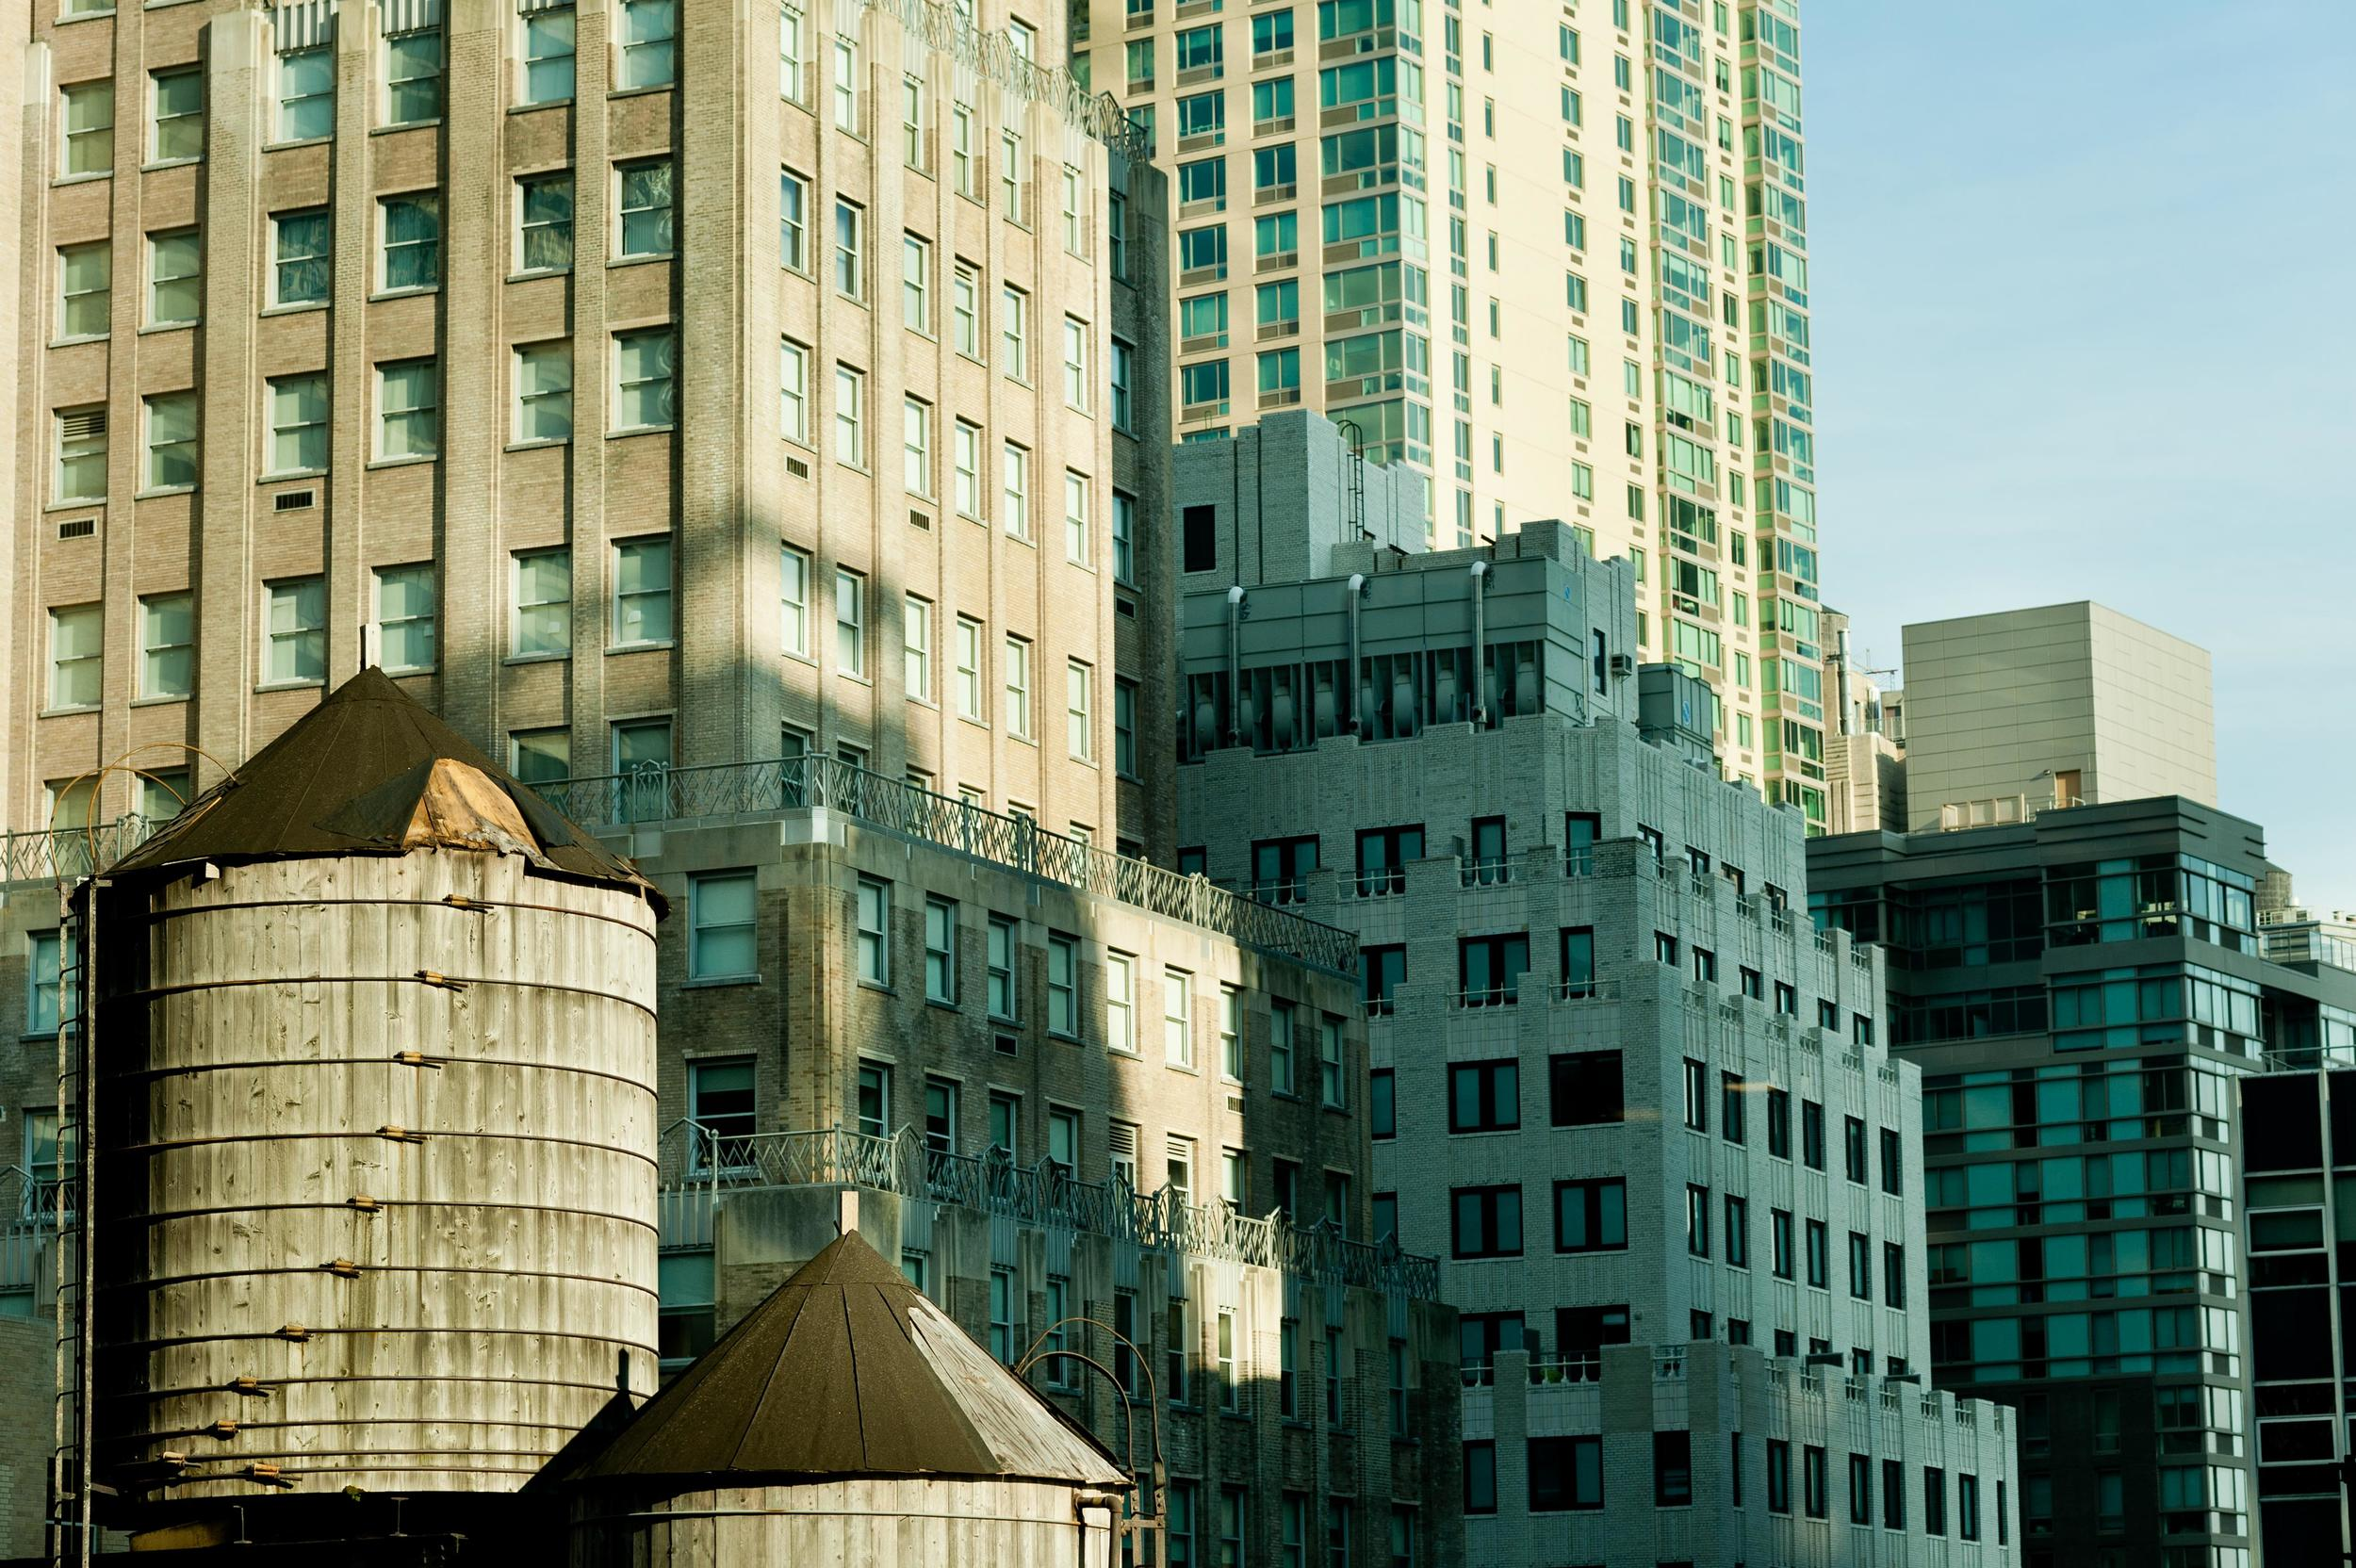 cityscape-new-york-water-tower_23453616896_o.jpg